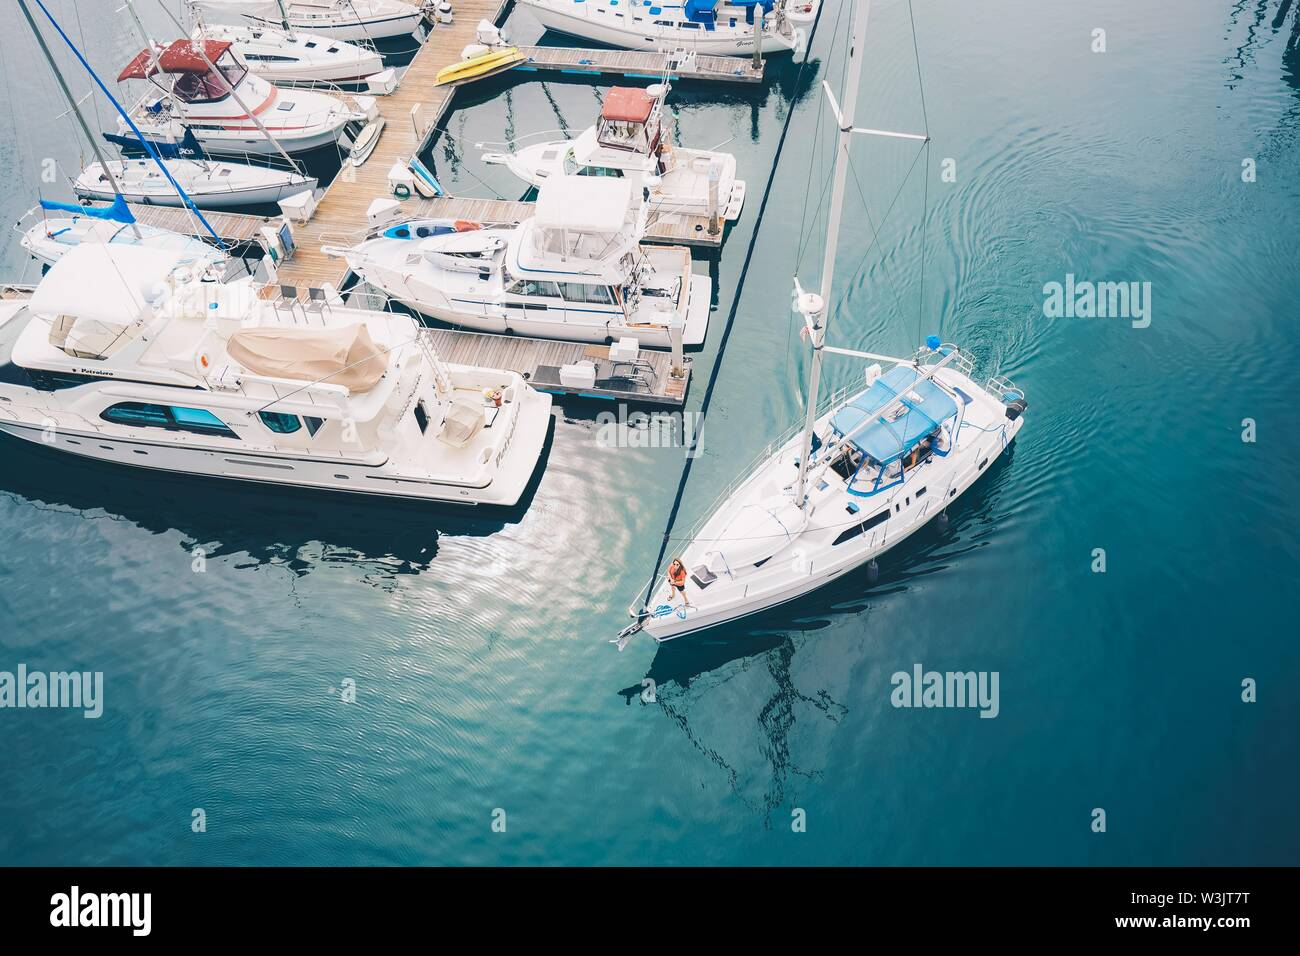 A white boat leaving the marina docks sailing on the water - Stock Image